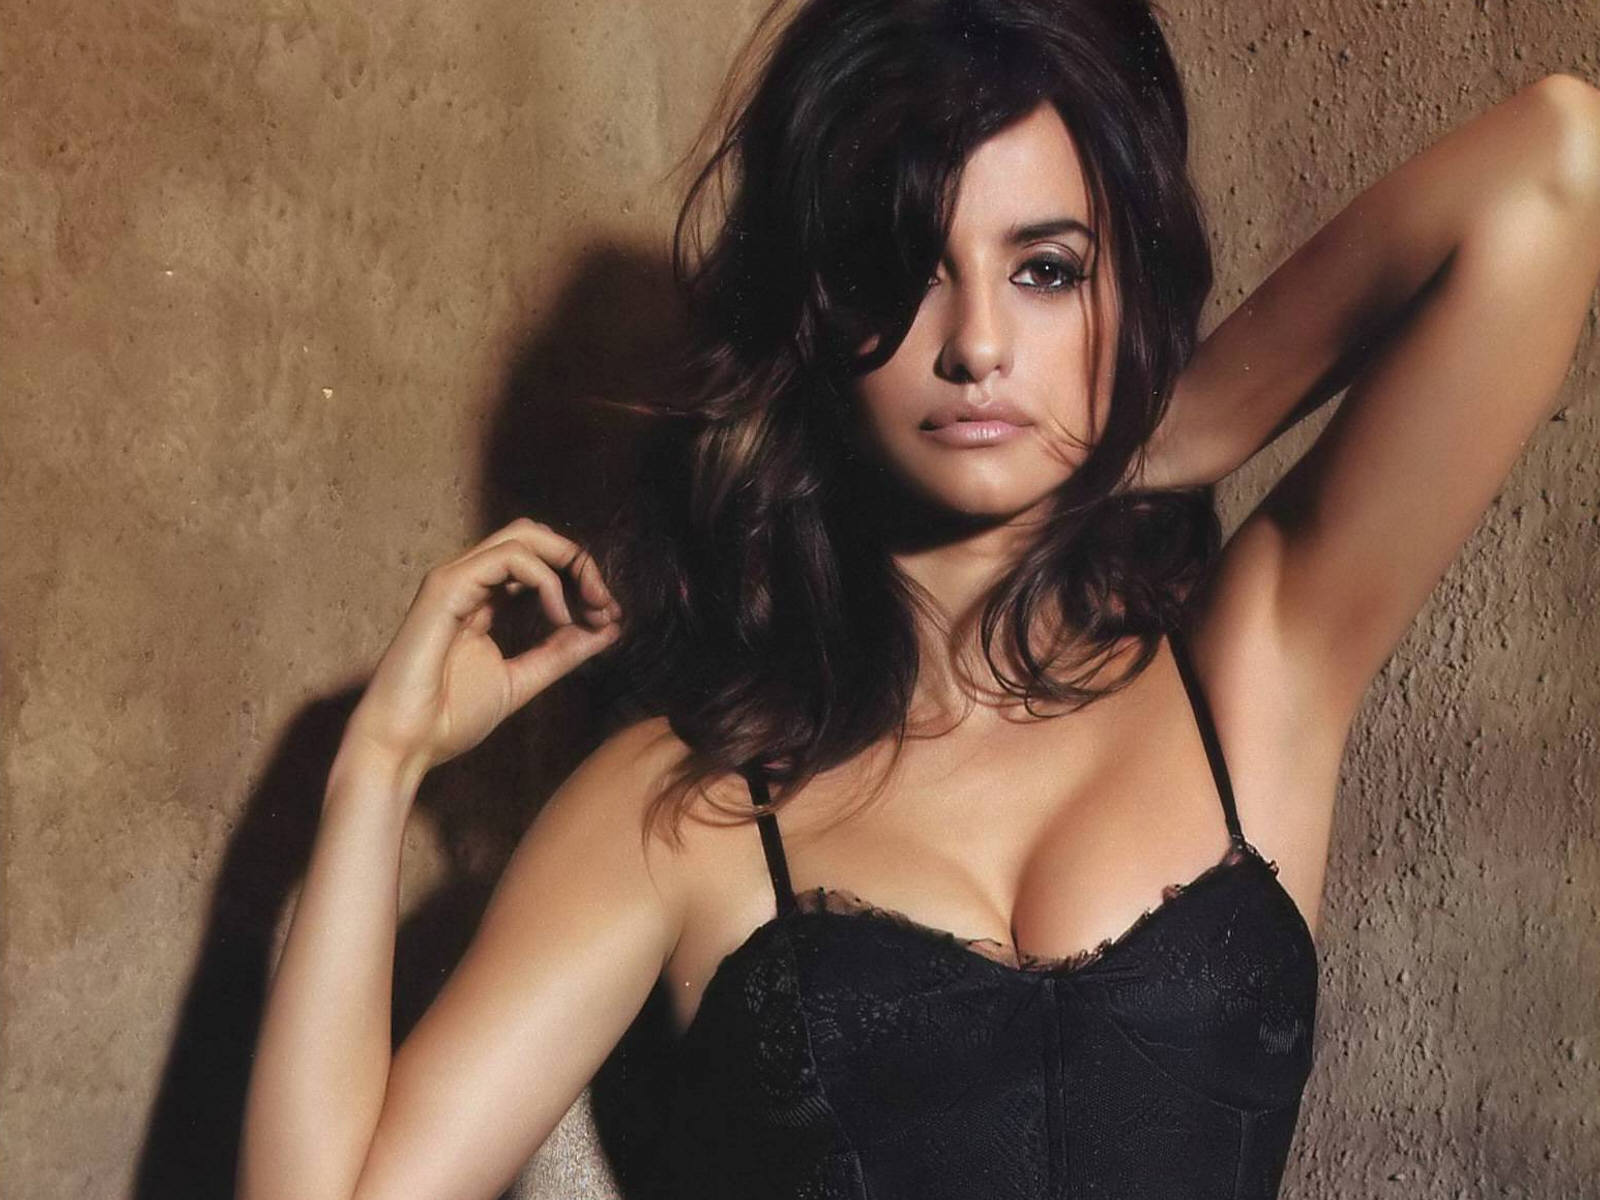 http://4.bp.blogspot.com/_-vygCA09hBk/TQQ77BoddPI/AAAAAAAAAZk/fF1Trhmr2F0/s1600/penelope-cruz-black-dress-photo.jpg